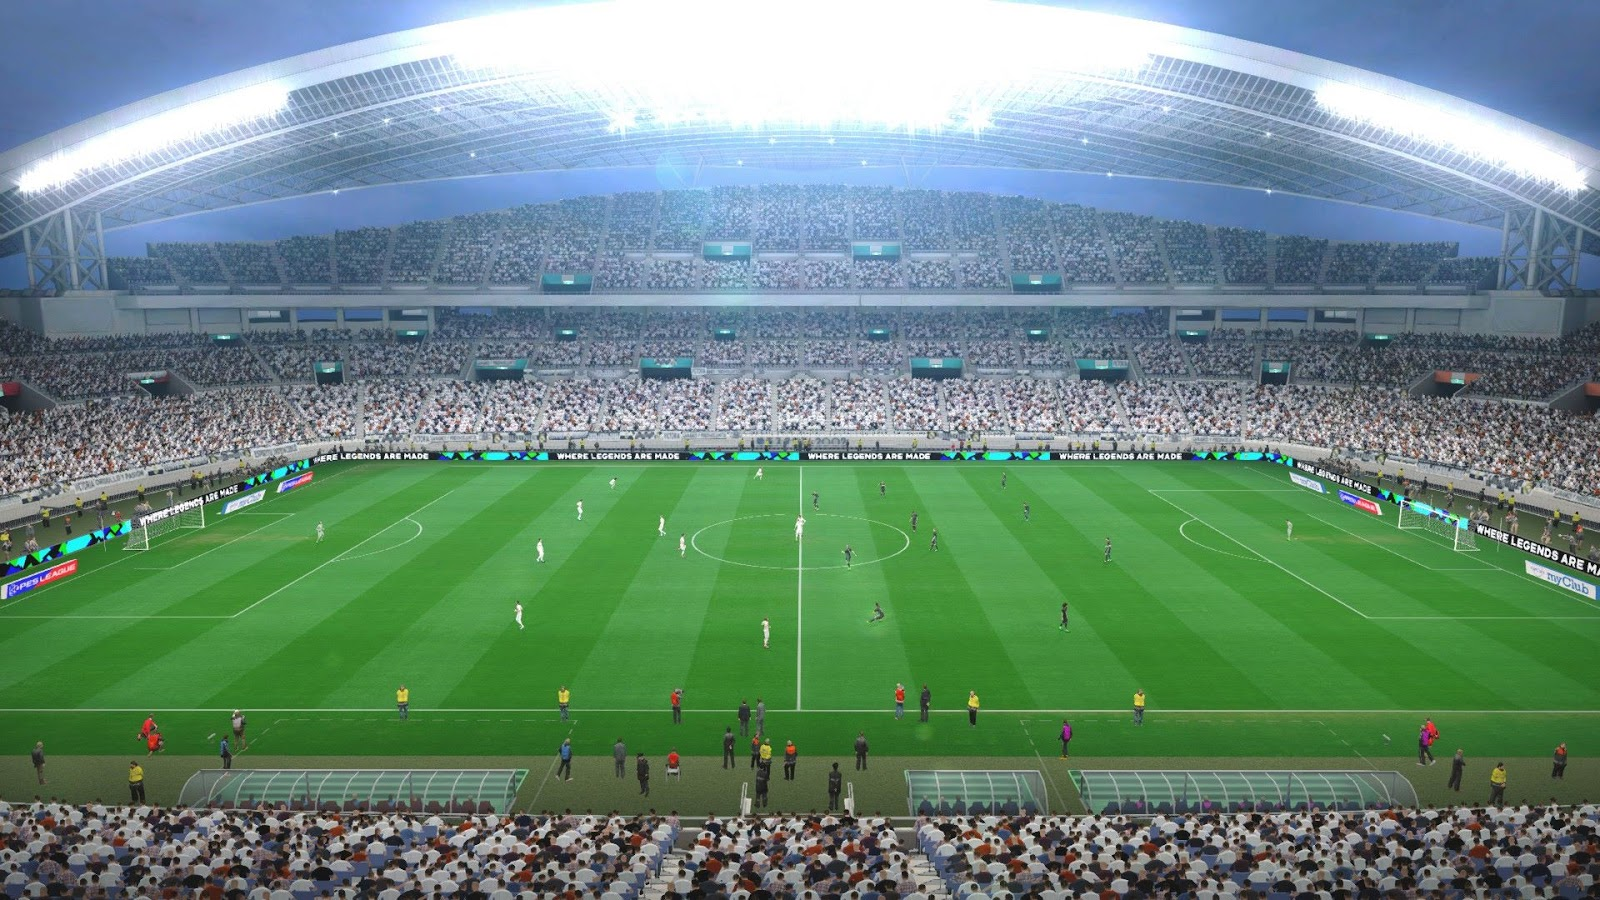 PES 2017 Pack Stadiums + Graphics PS4 + FIX v1 1 by Estarlen Silva